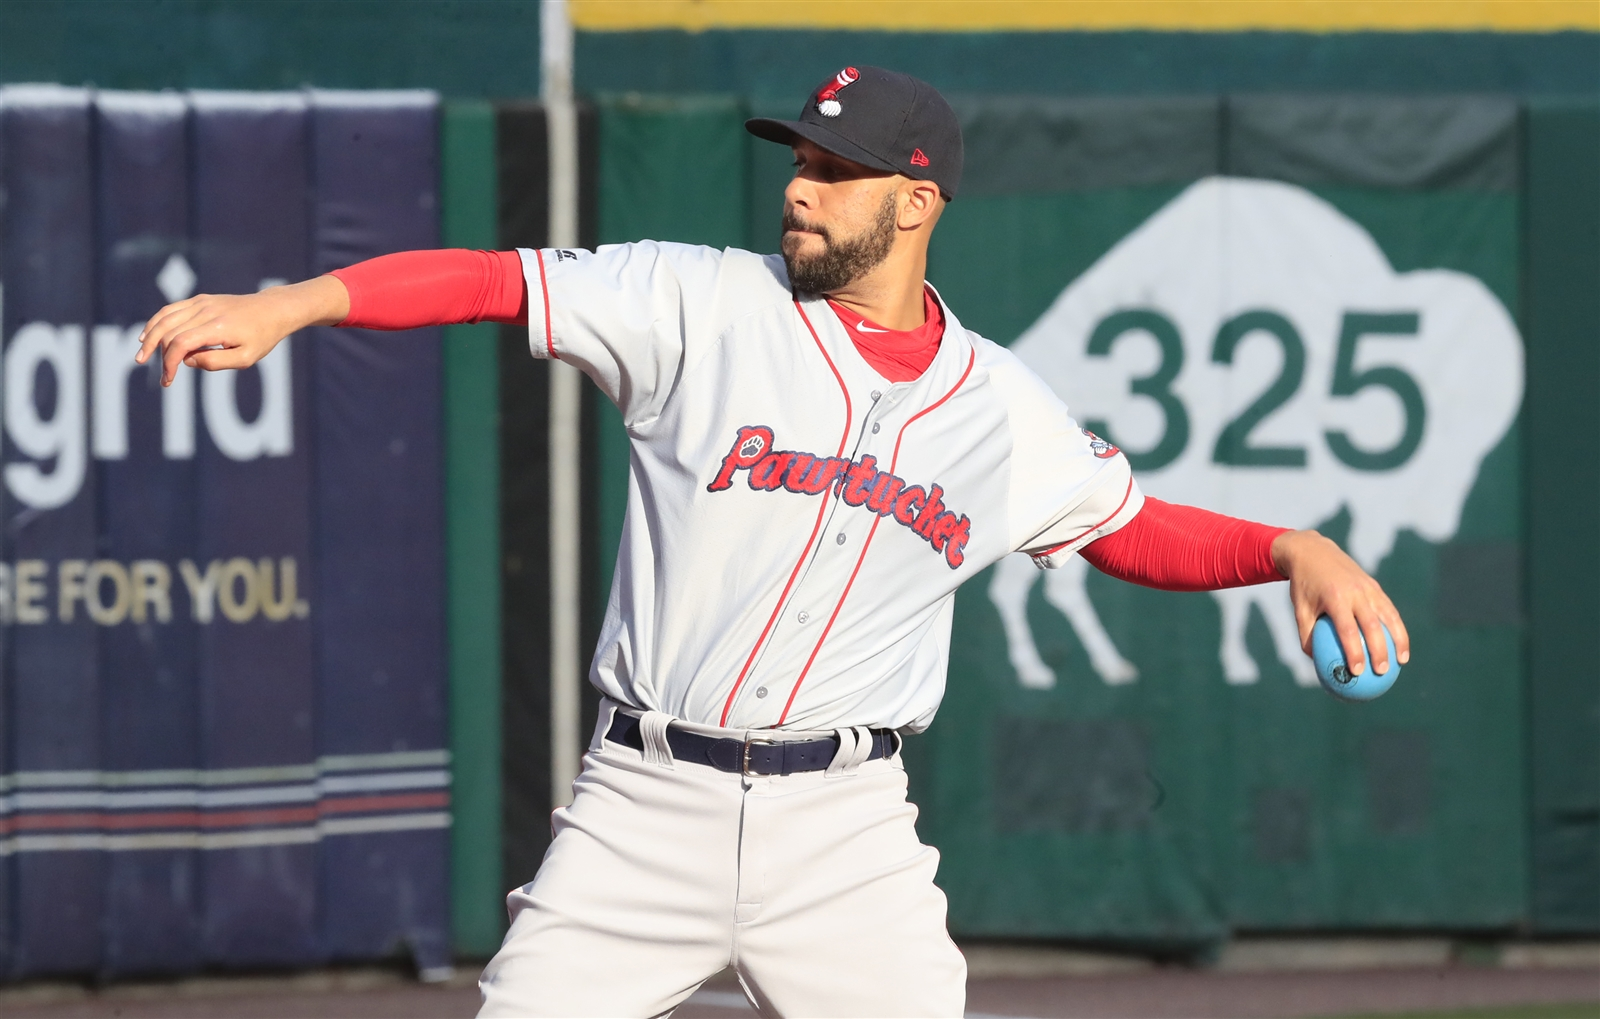 Pawtucket Red Sox pitcher David Price warms up prior to playing the Buffalo Bisons at Coca-Cola Field on Friday, May 19, 2017.